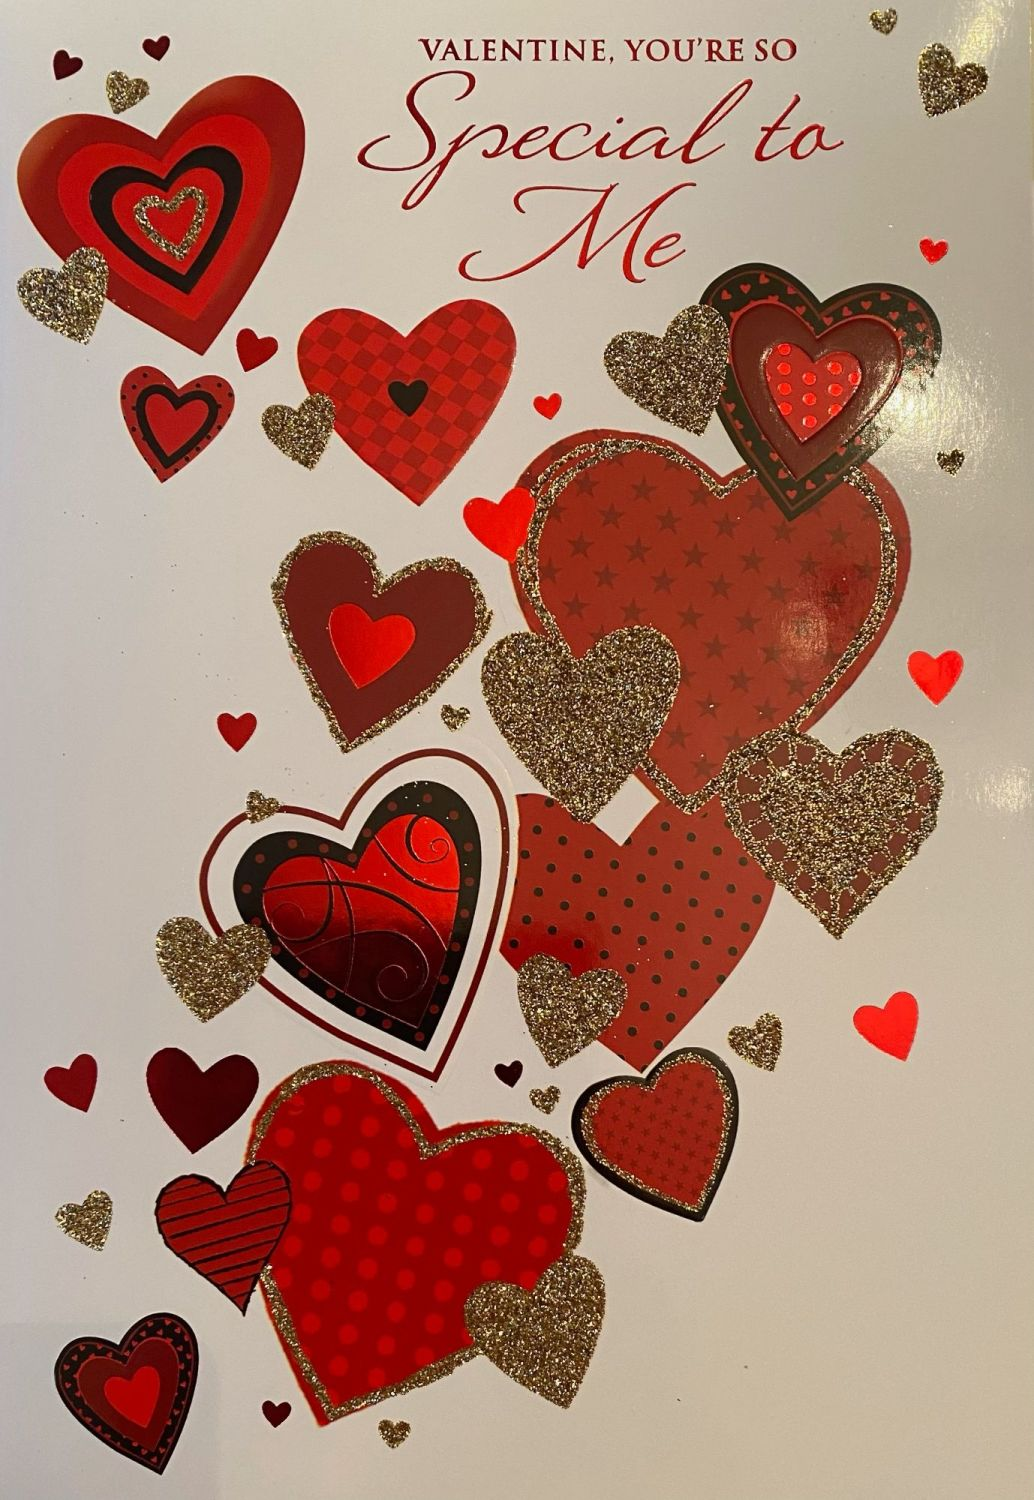 Valentine, You're So Special To Me - Card